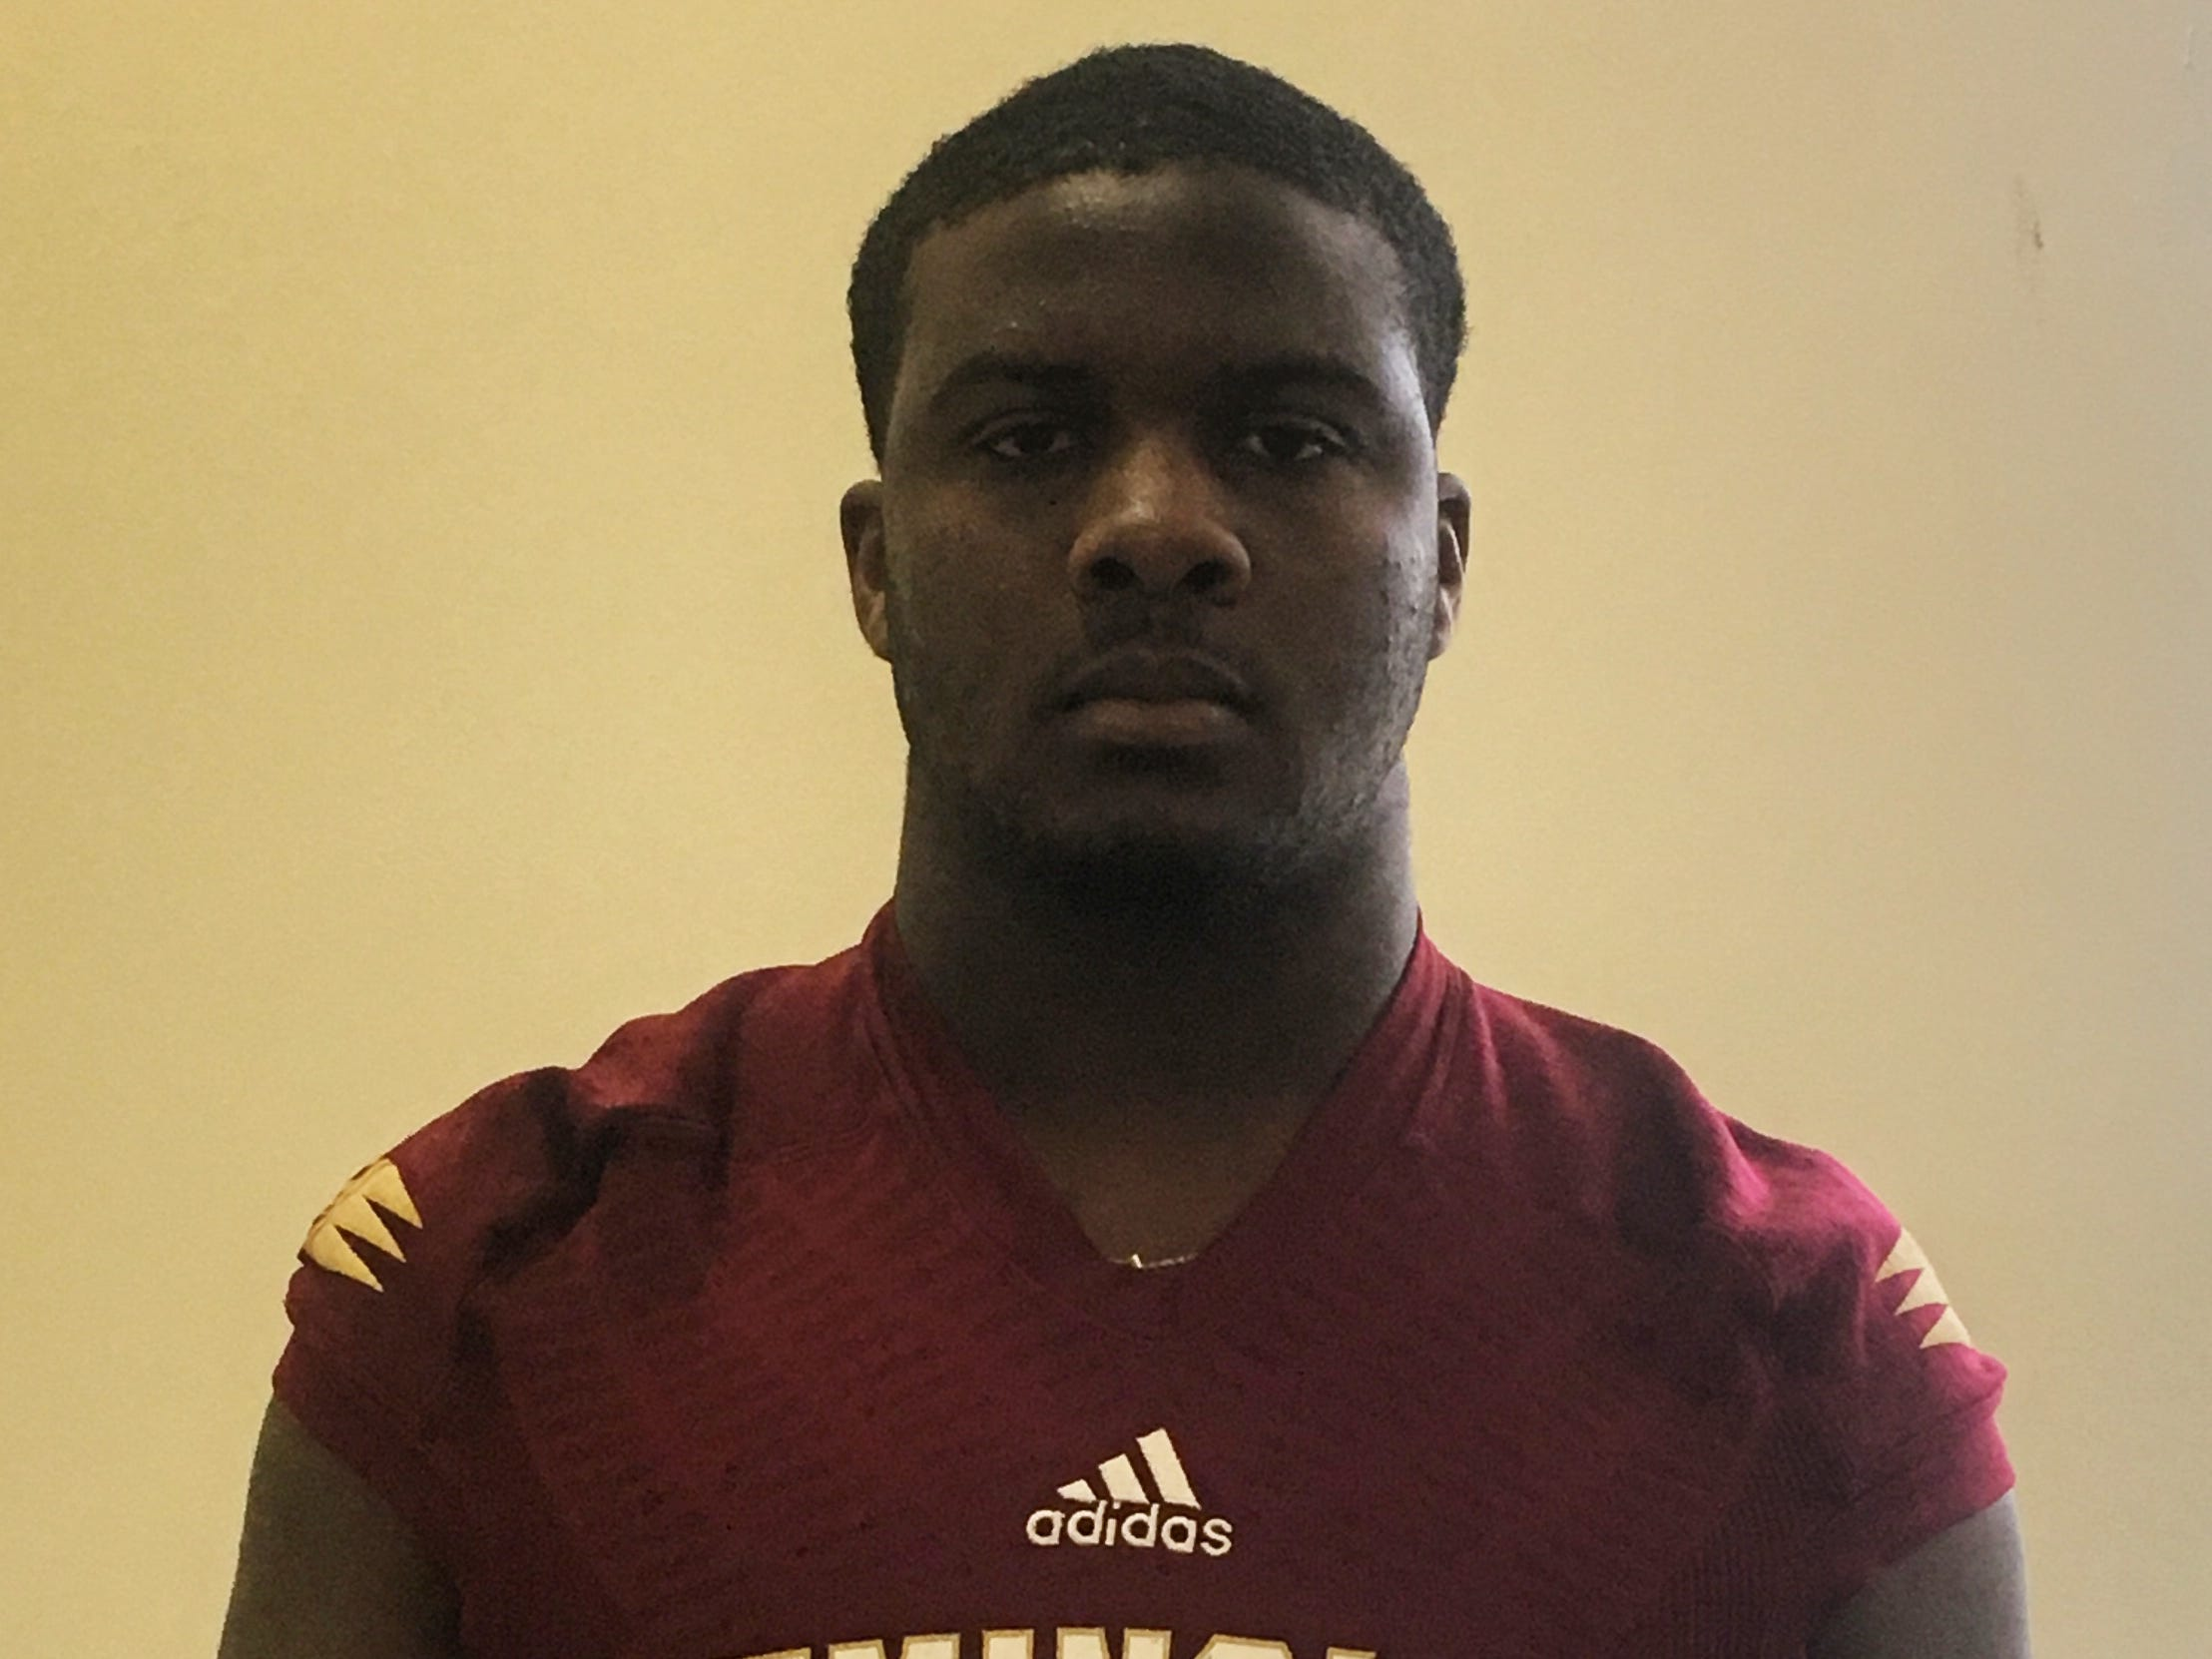 Florida High senior defensive tackle Jolan Gilley was named to the 2018 All-Big Bend football first team for defense. STATS: 67 T, 21 TFL, 3 sacks